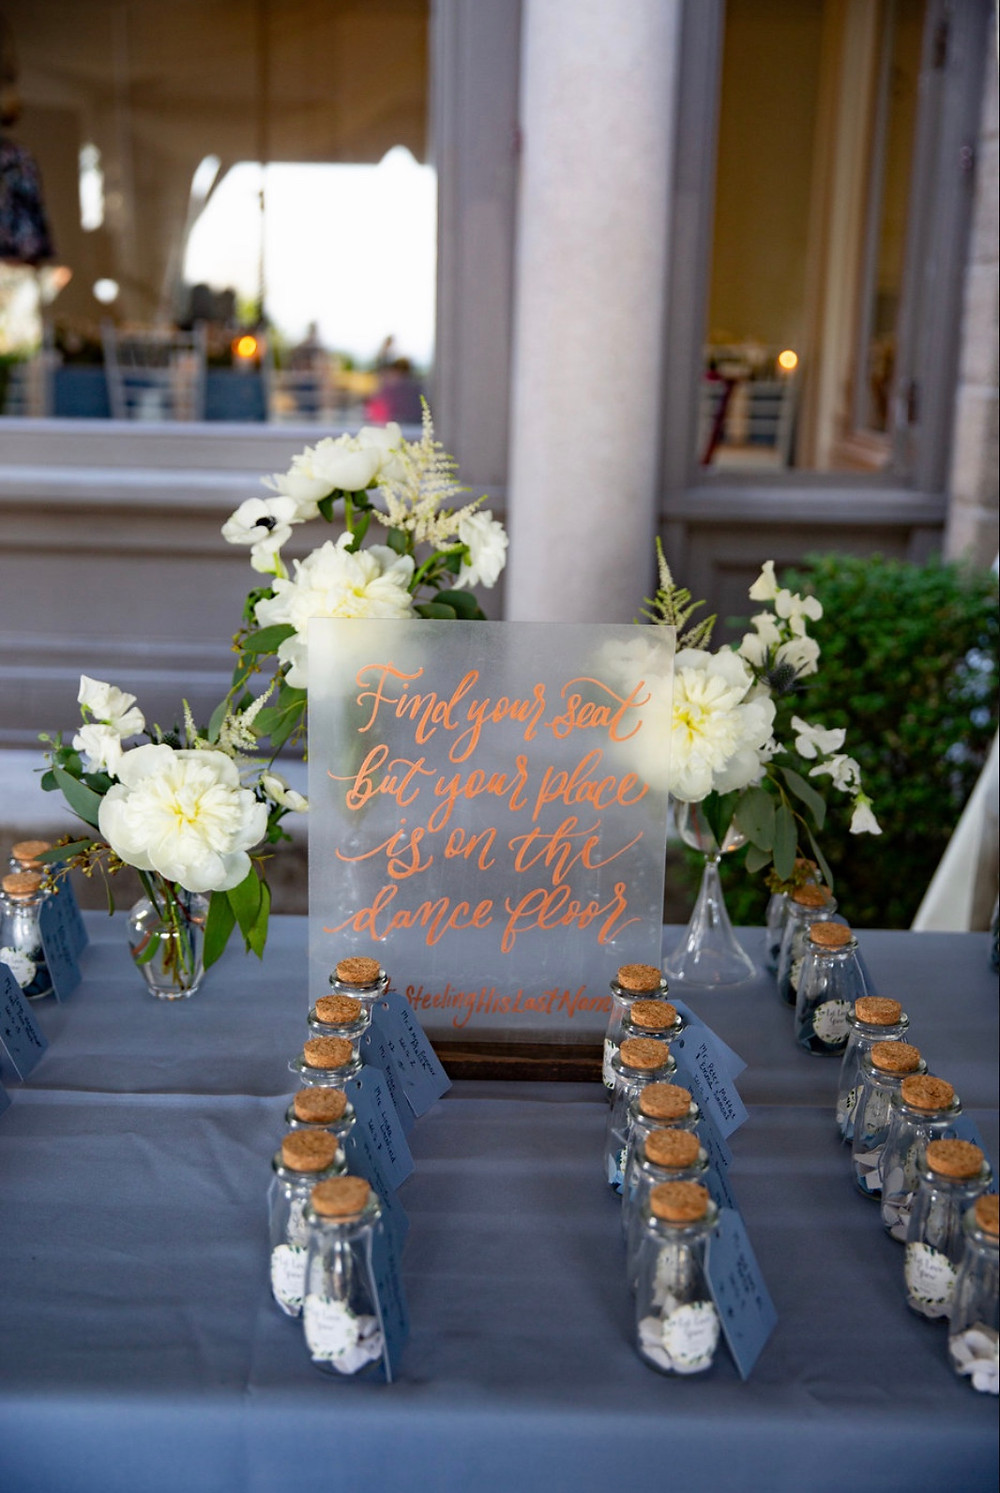 Escort card table flowers at Eolia Mansion, Harkness State